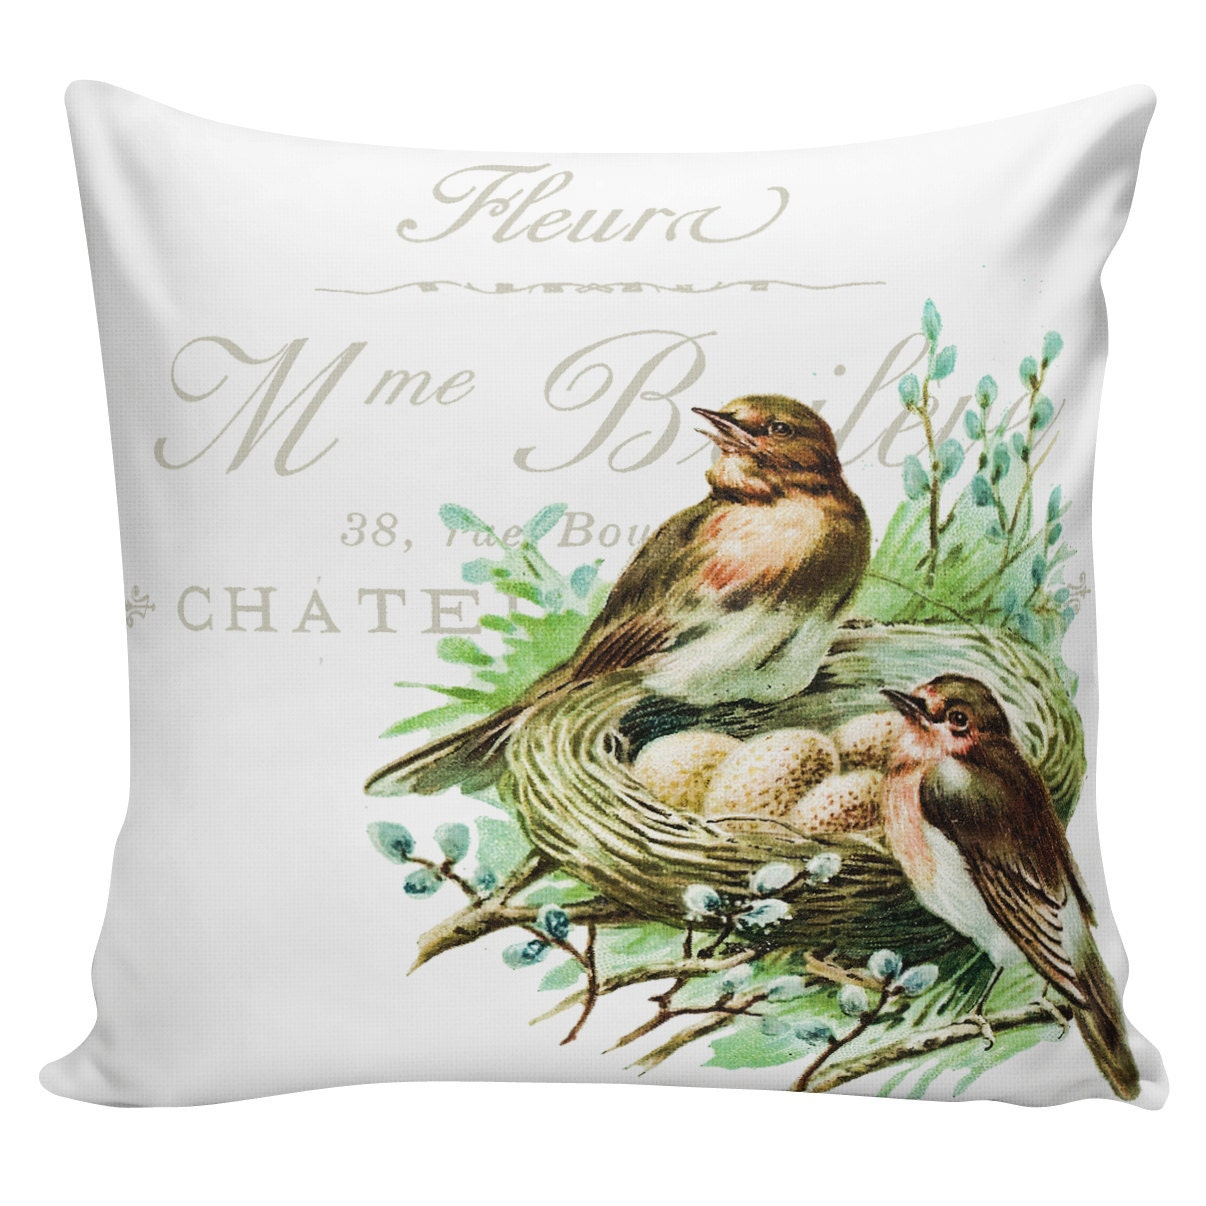 Easter Throw Pillow Covers : Easter Pillow Cover French Throw Pillow Farmhouse Bird Nest